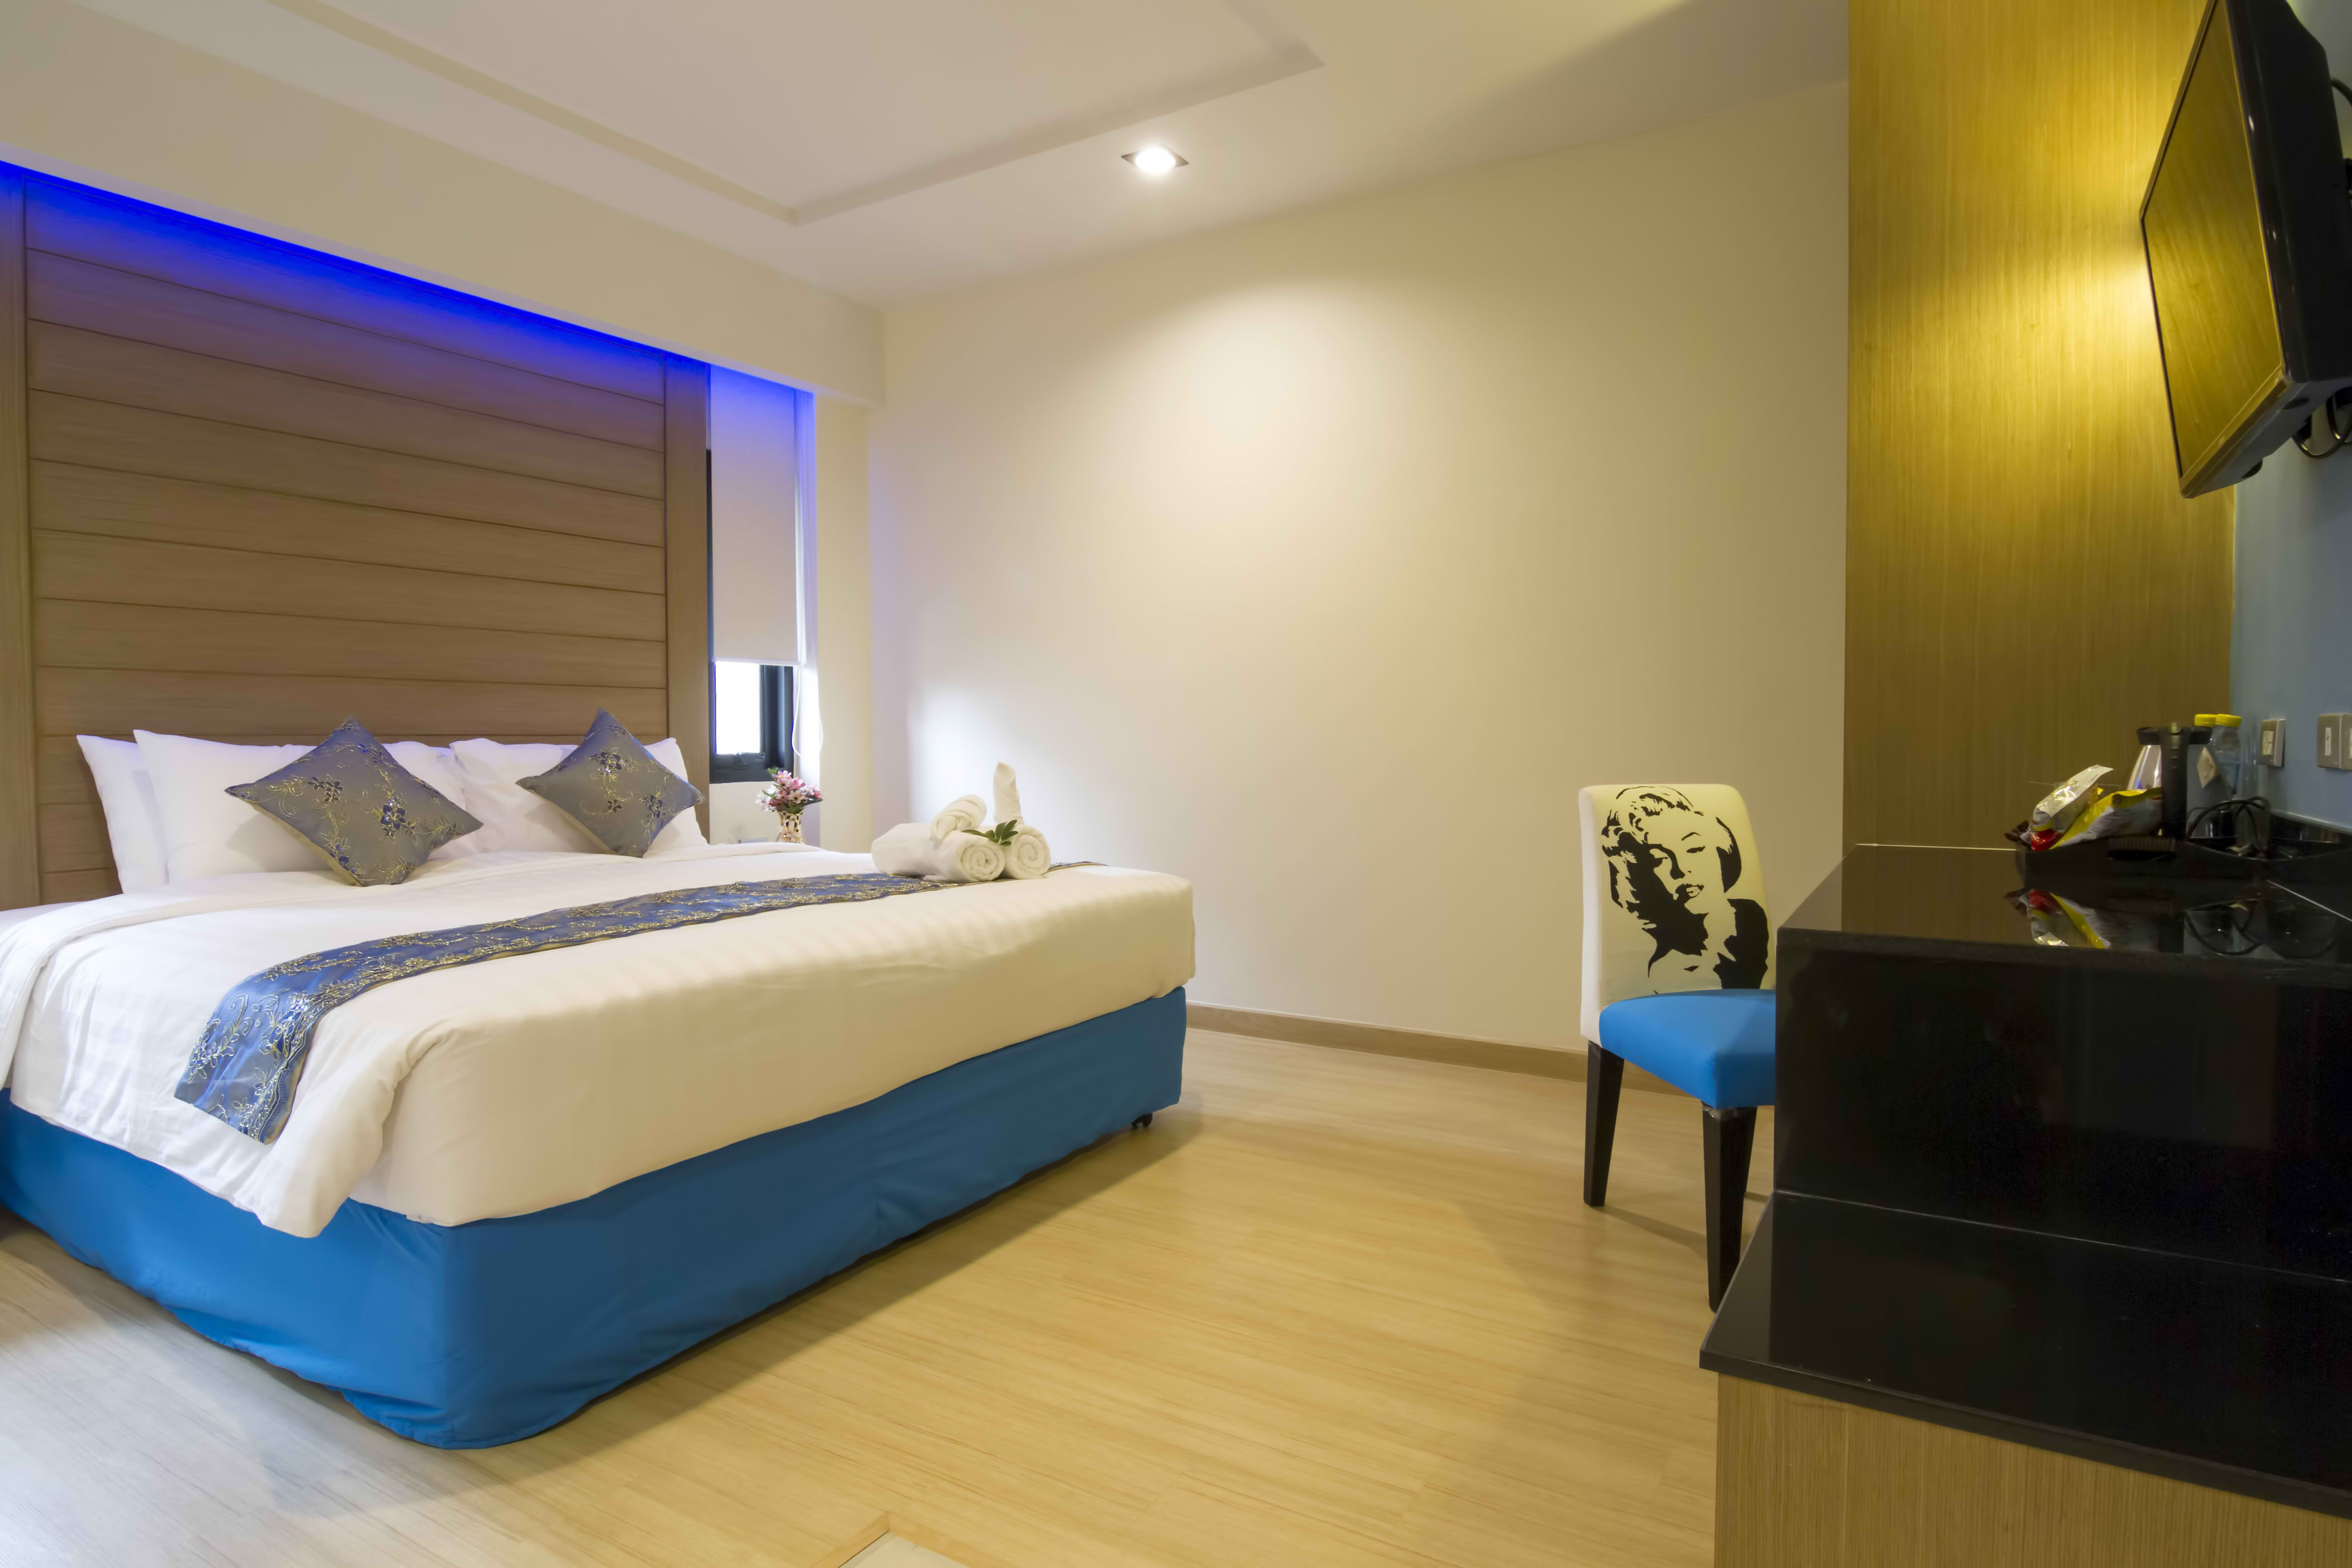 Eleven Avenue Suites Bangkok Deluxe King